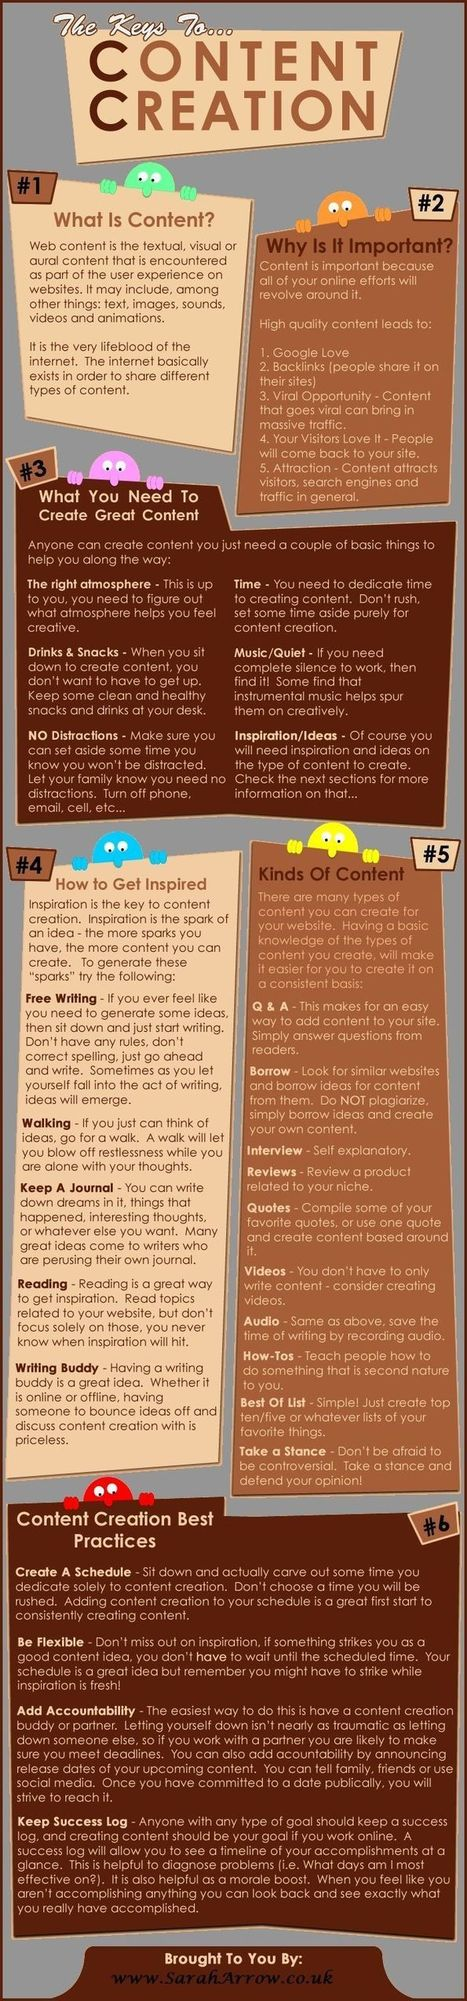 Awesome Infographics! | Live and Learn Social Media | Scoop.it